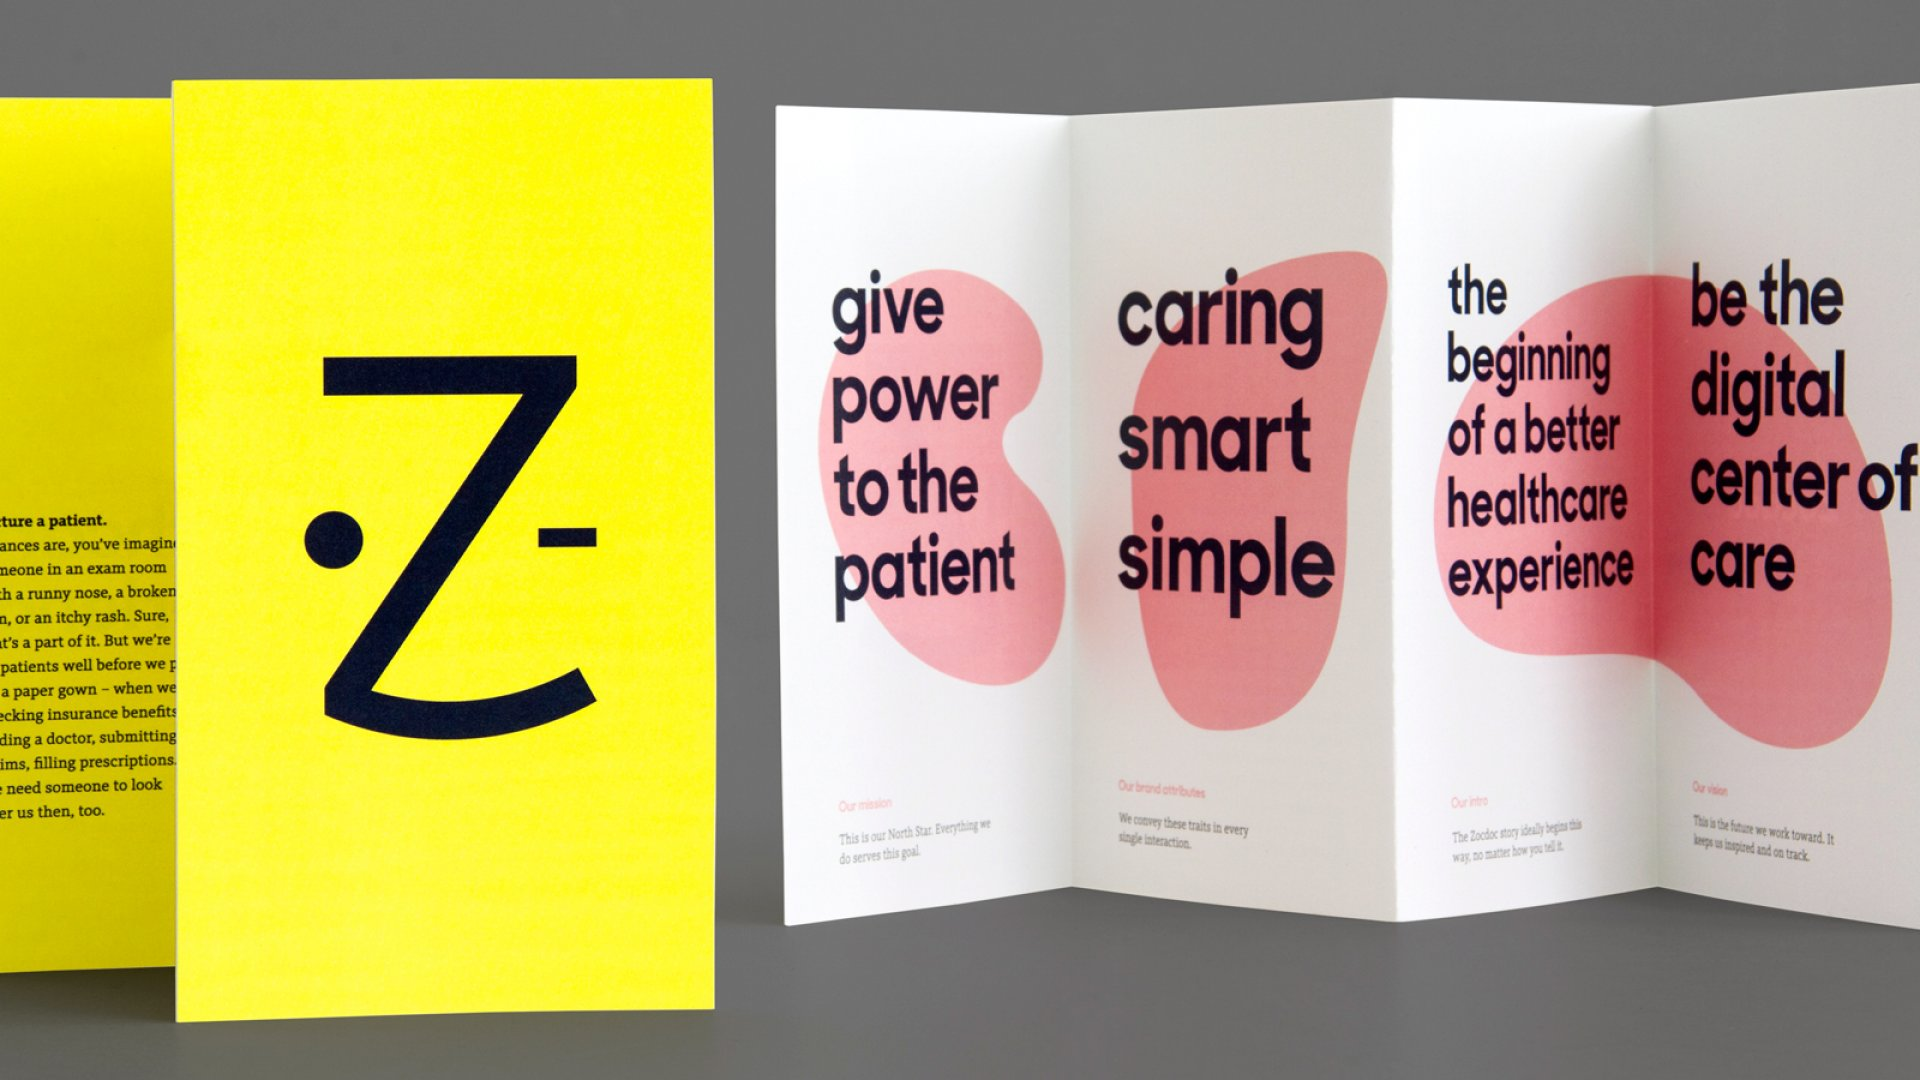 How Zocdoc Is Trying to Attract More Millennials With a Branding Makeover